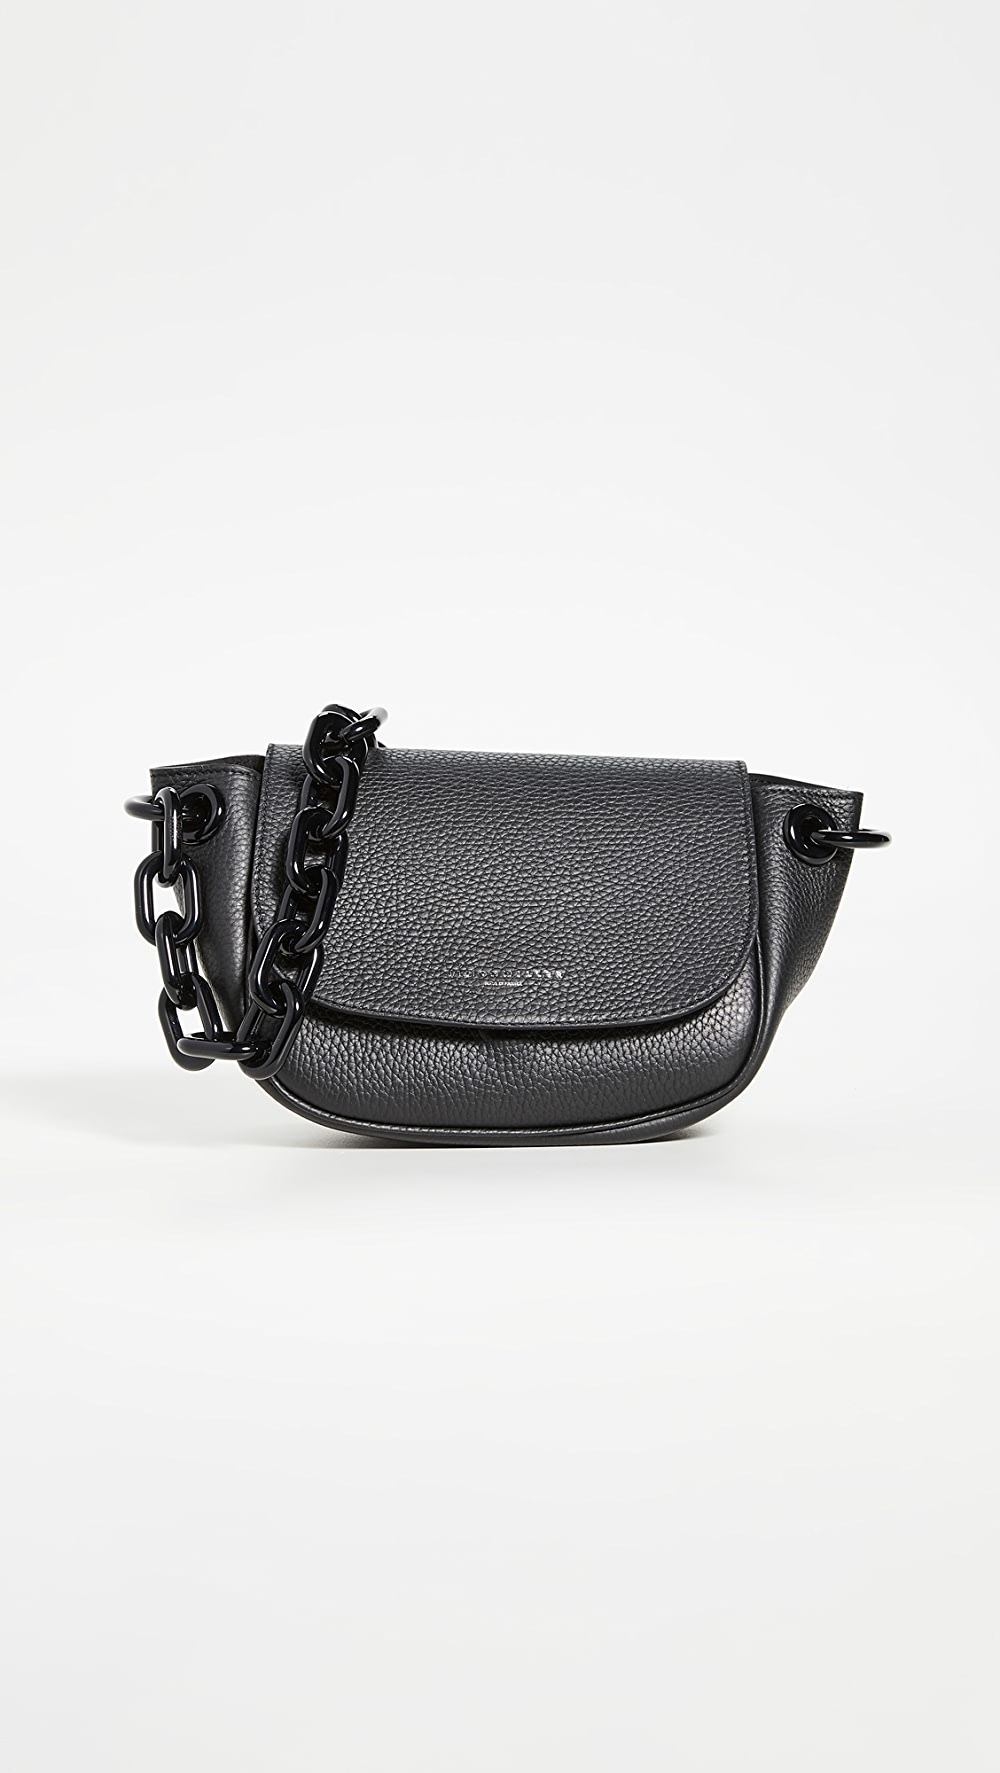 Have An Inquiring Mind Simon Miller - Bend Bag Suitable For Men, Women, And Children